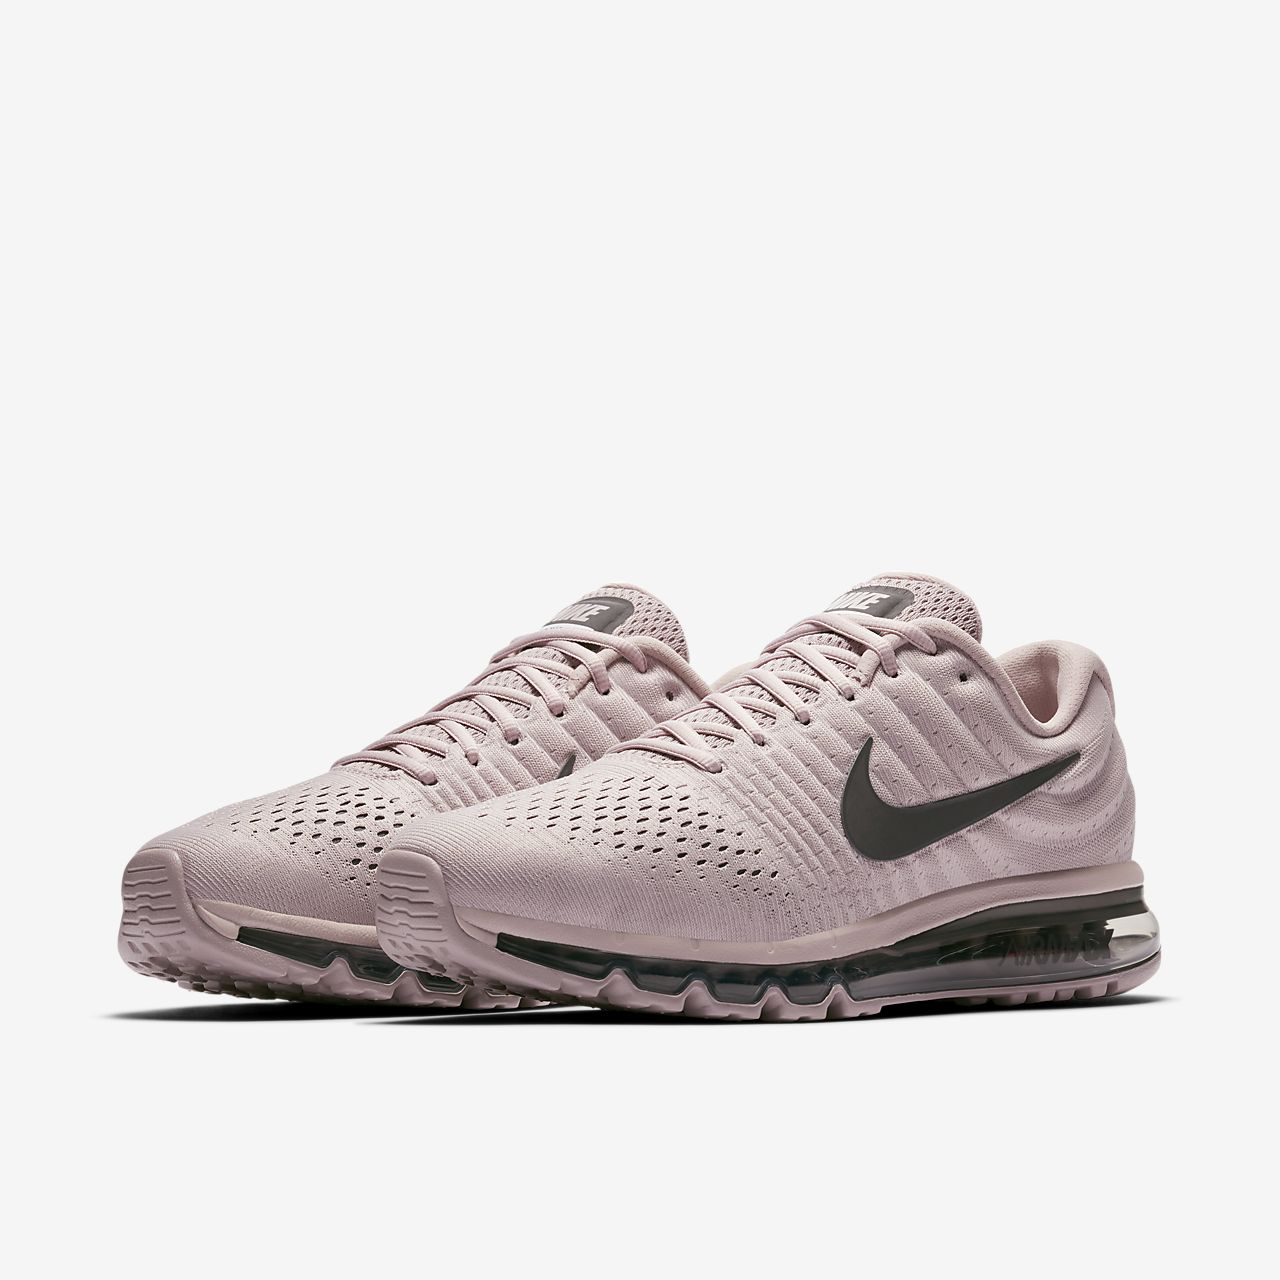 Pour Se Max Chaussure HommeFr 2017 Air Nike DY2WE9IHe